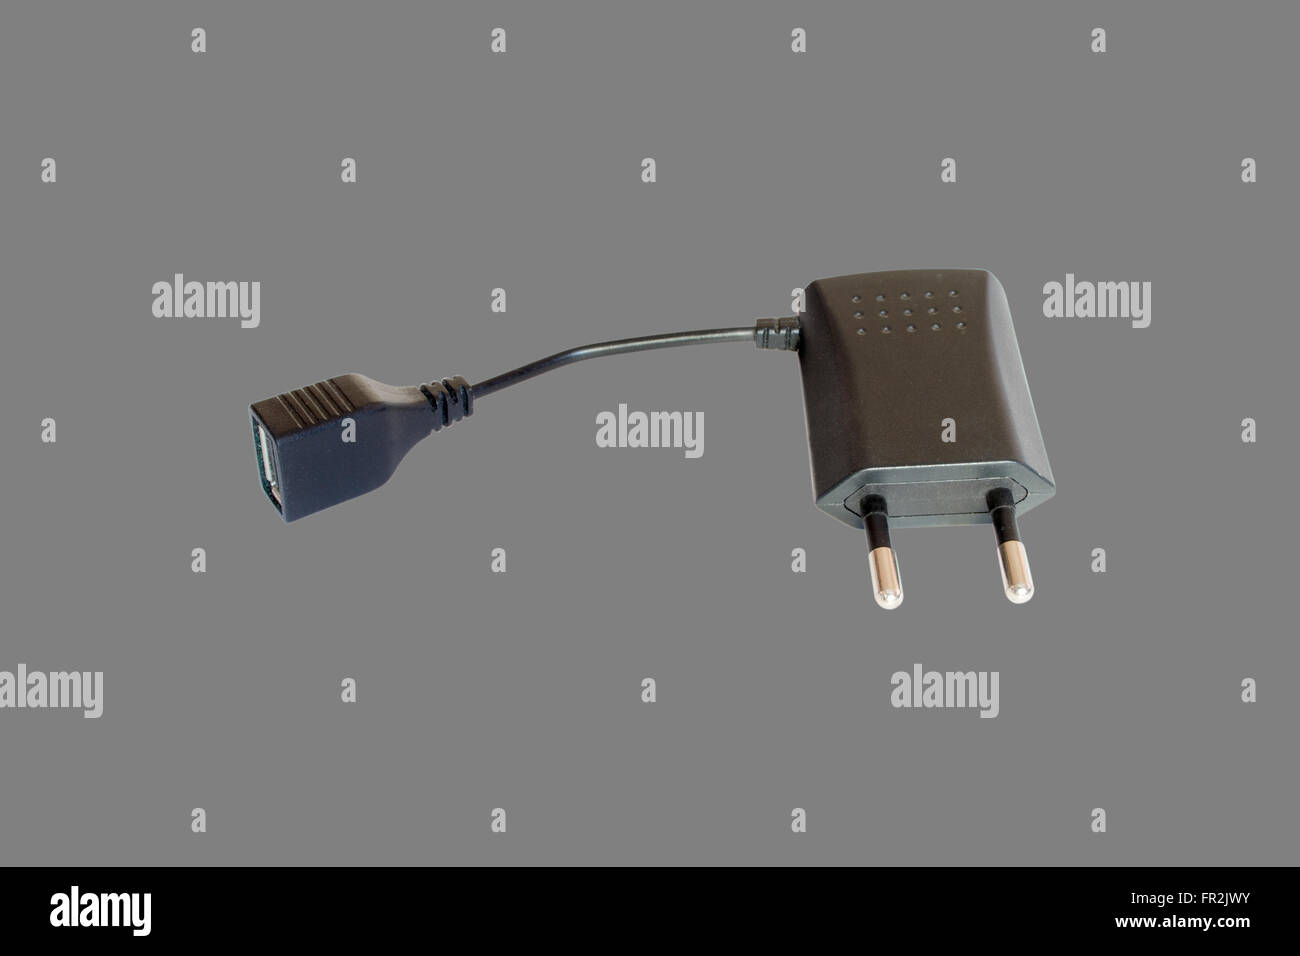 AC adapter with USB. Isolate on gray background - Stock Image